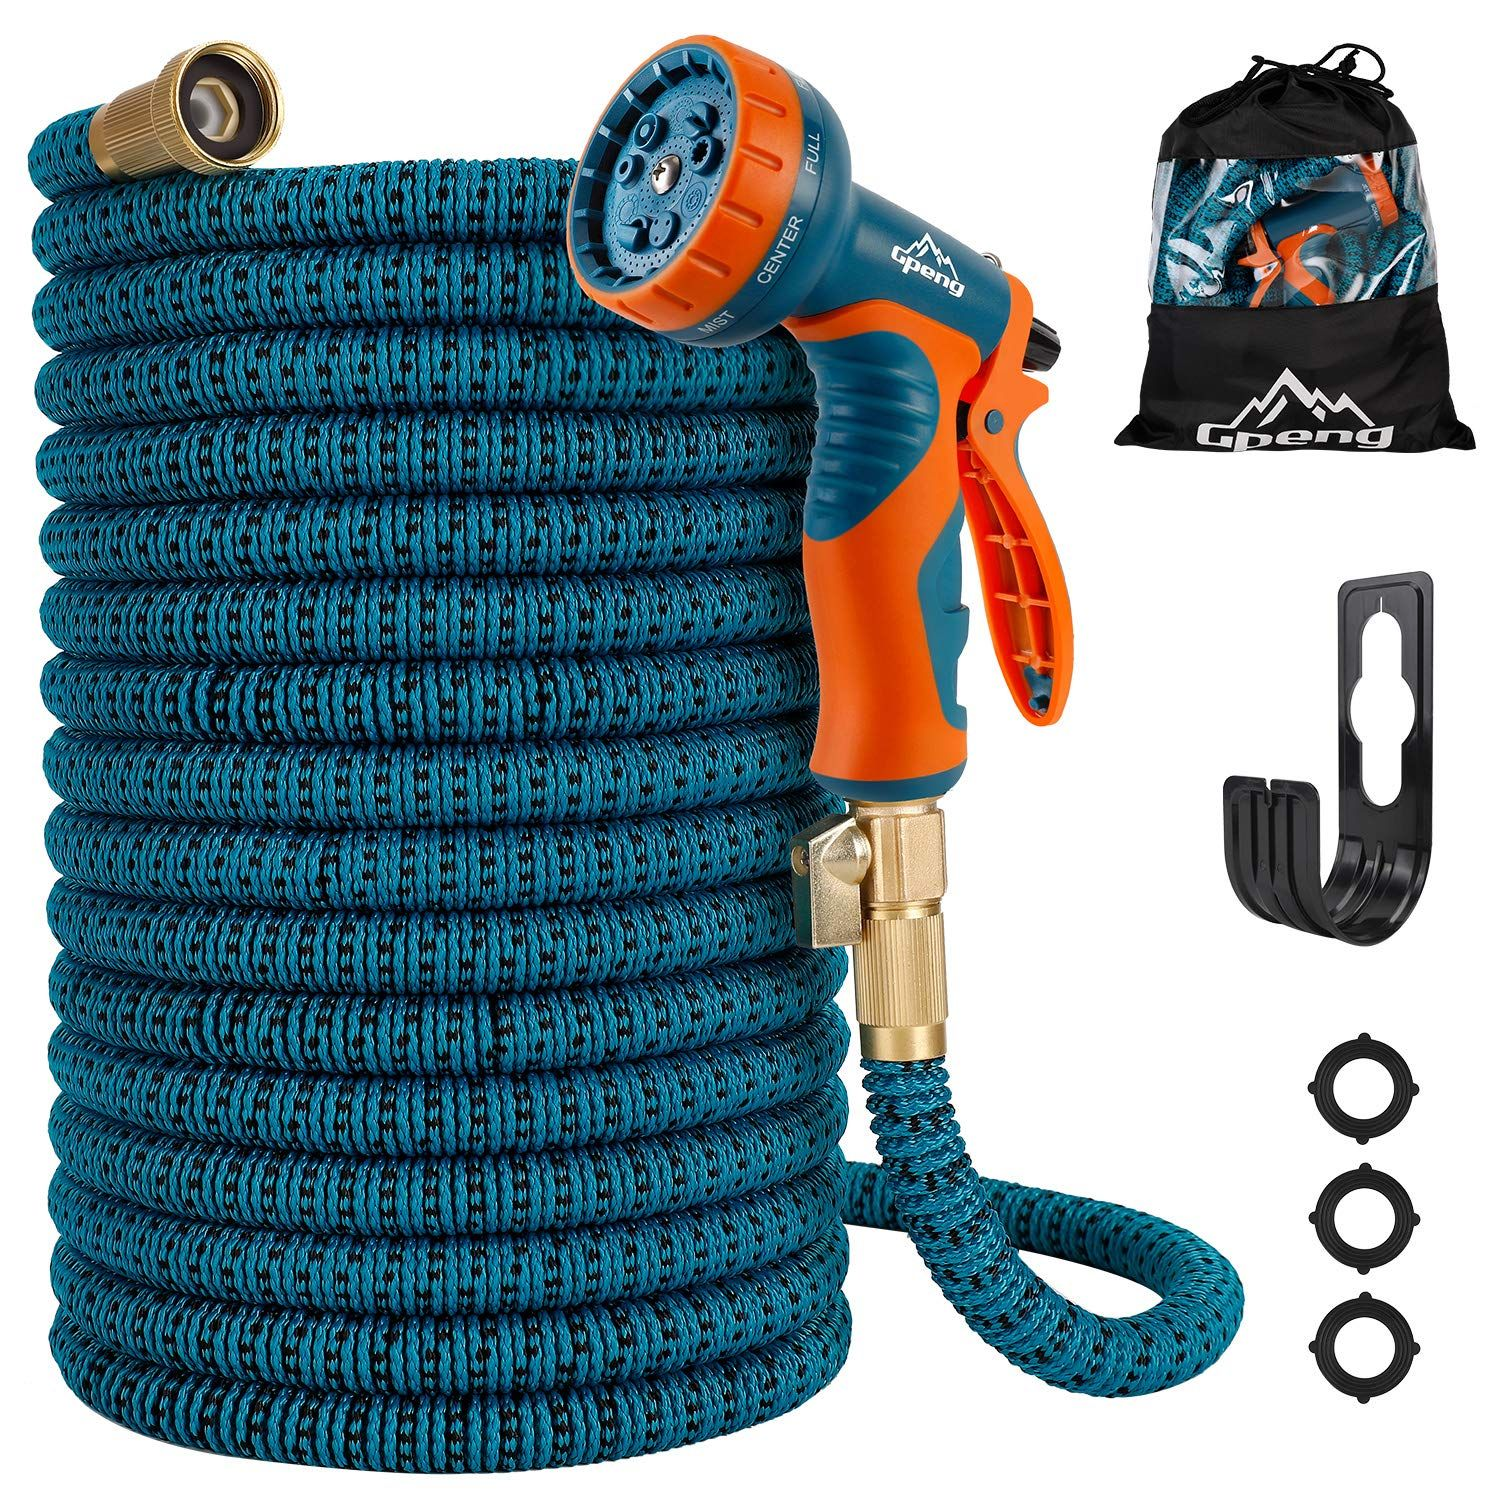 Gpeng Garden Hose 2019 New Upgraded 50 100 Ft Expandable Garden Hose Expanding Water Hose Lightweight Garden Water Garden Hose Simple Storage Water Hose